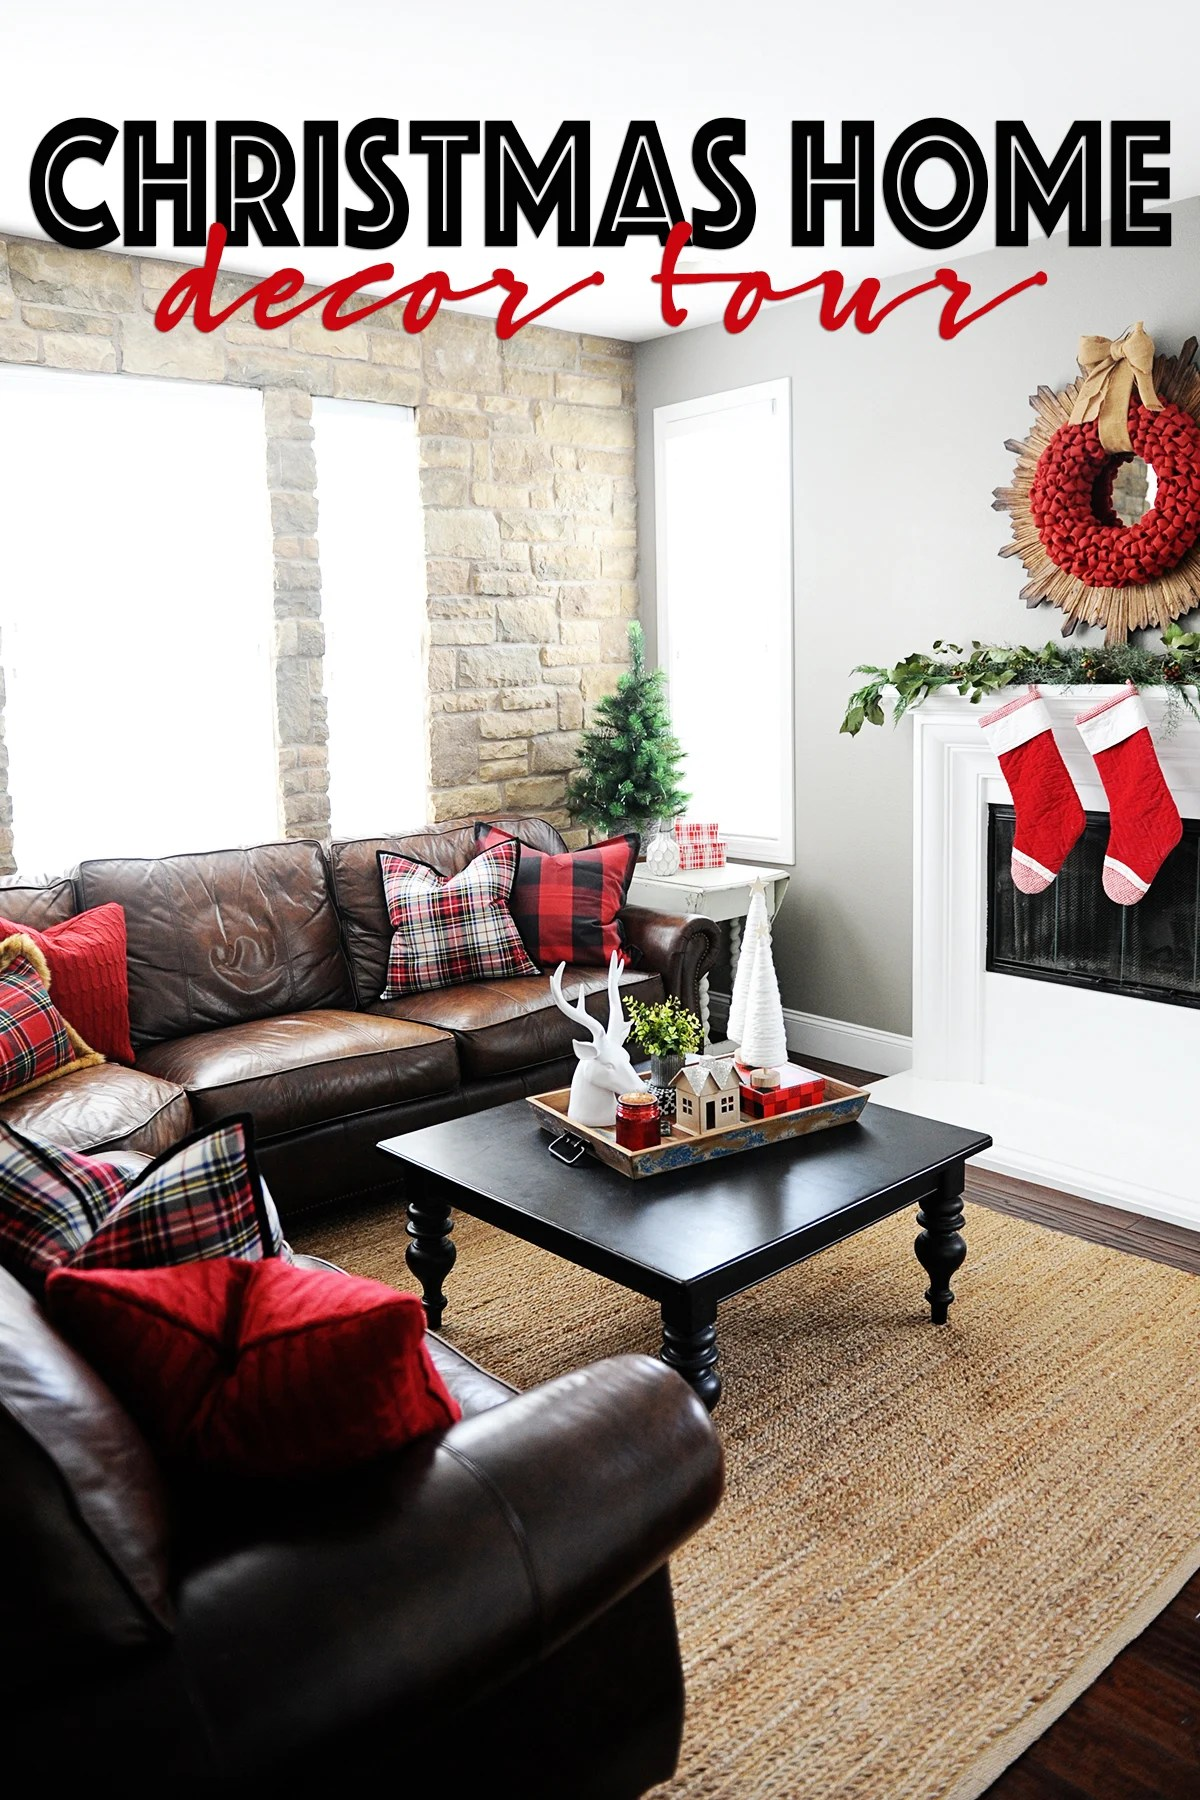 Christmas home decor tour